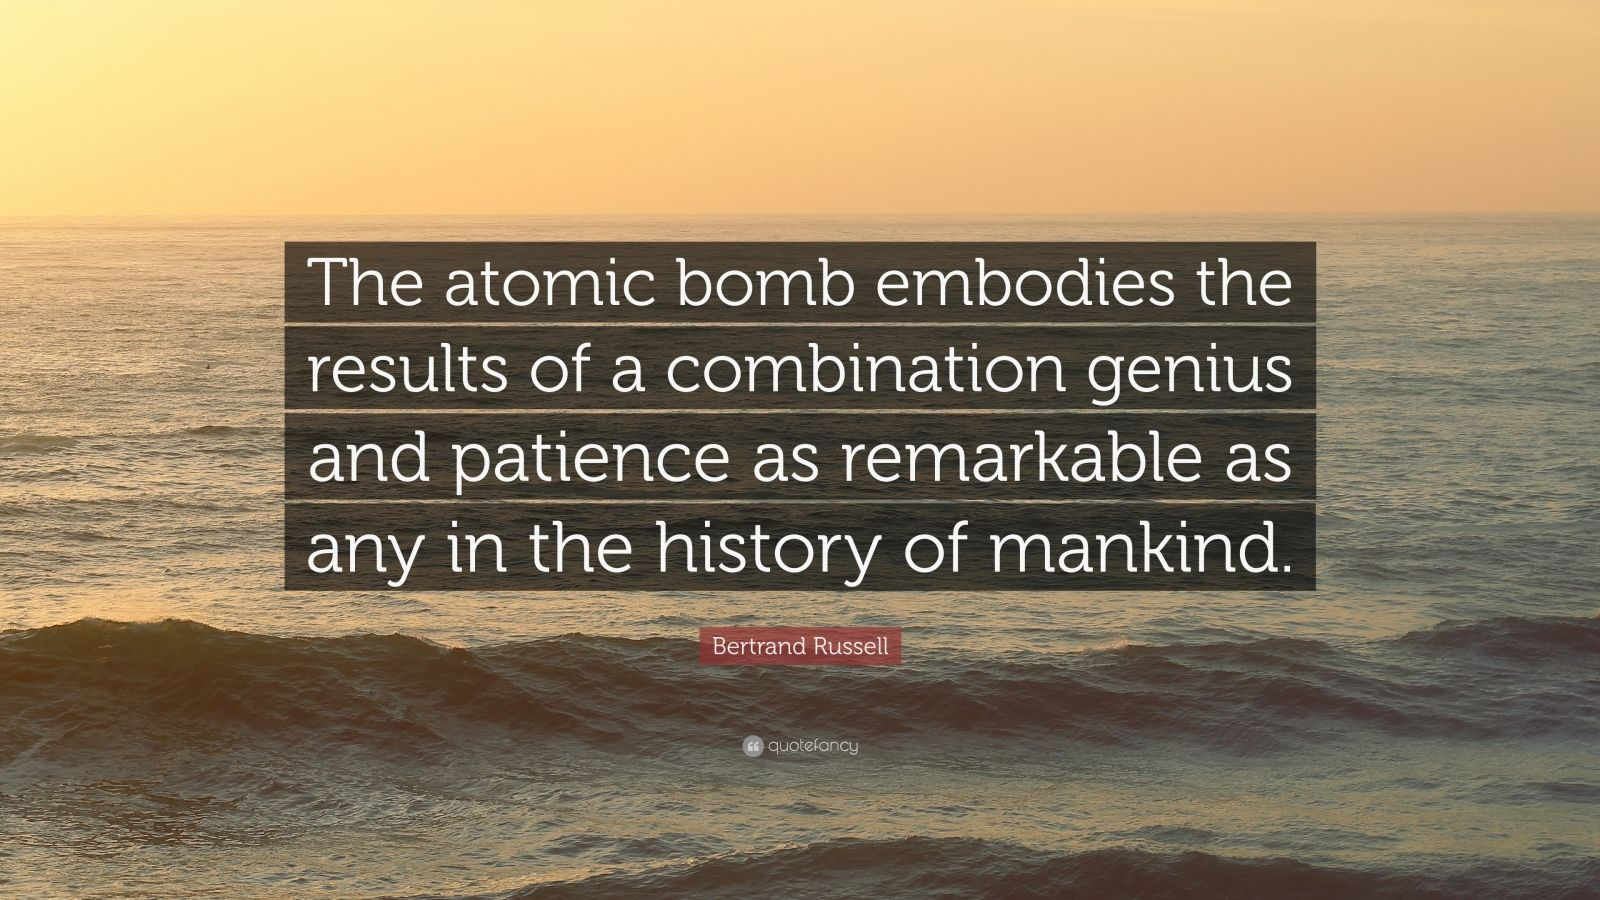 """Bertrand Russell Quote: """"The atomic bomb embodies the results of a combination genius and patience as remarkable as any in the history of mankind."""""""